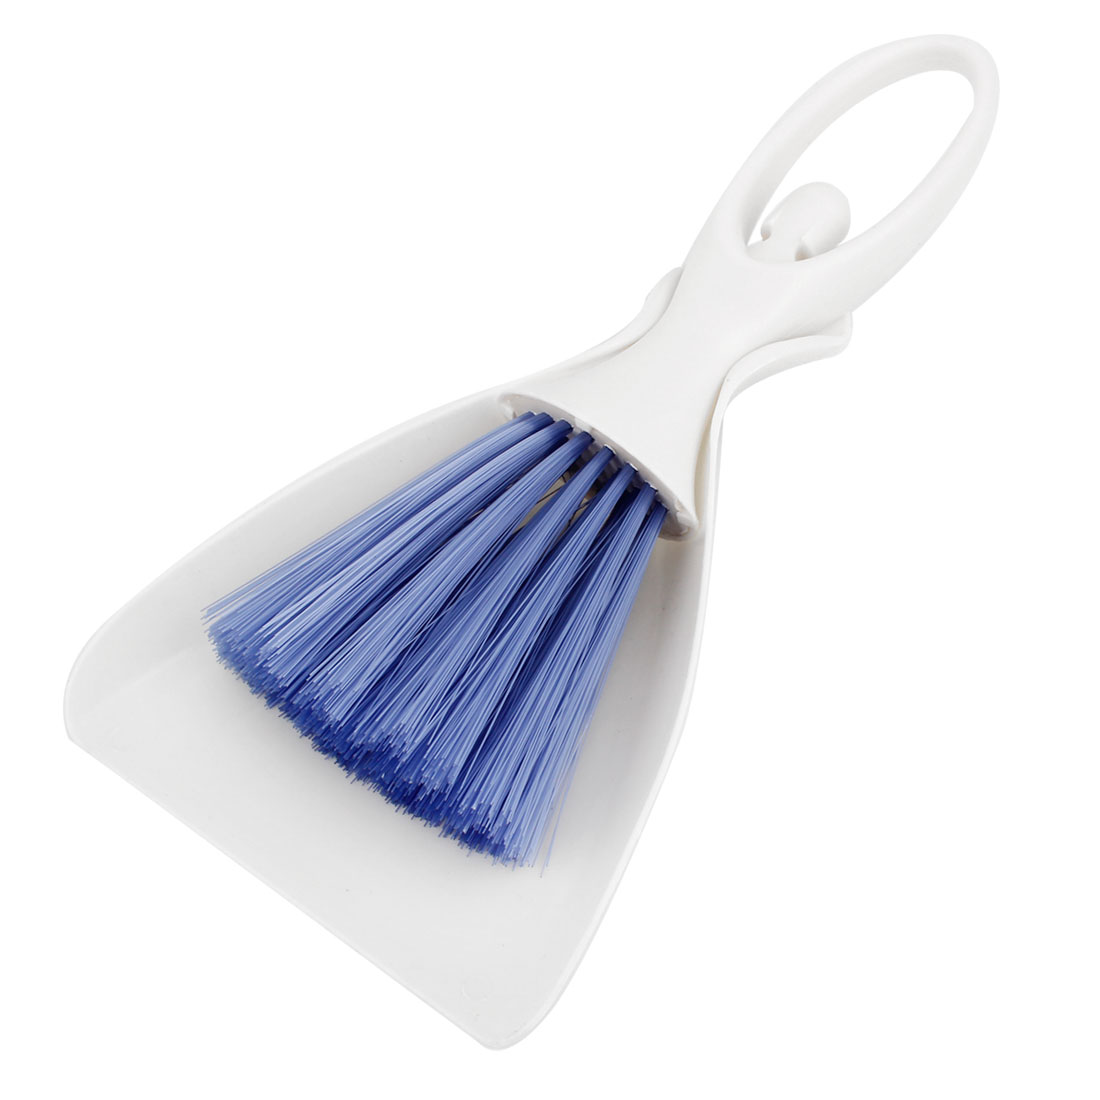 Computer Keyboard Desktop Blue White Plastic Cleaning Brush Dustpan Set